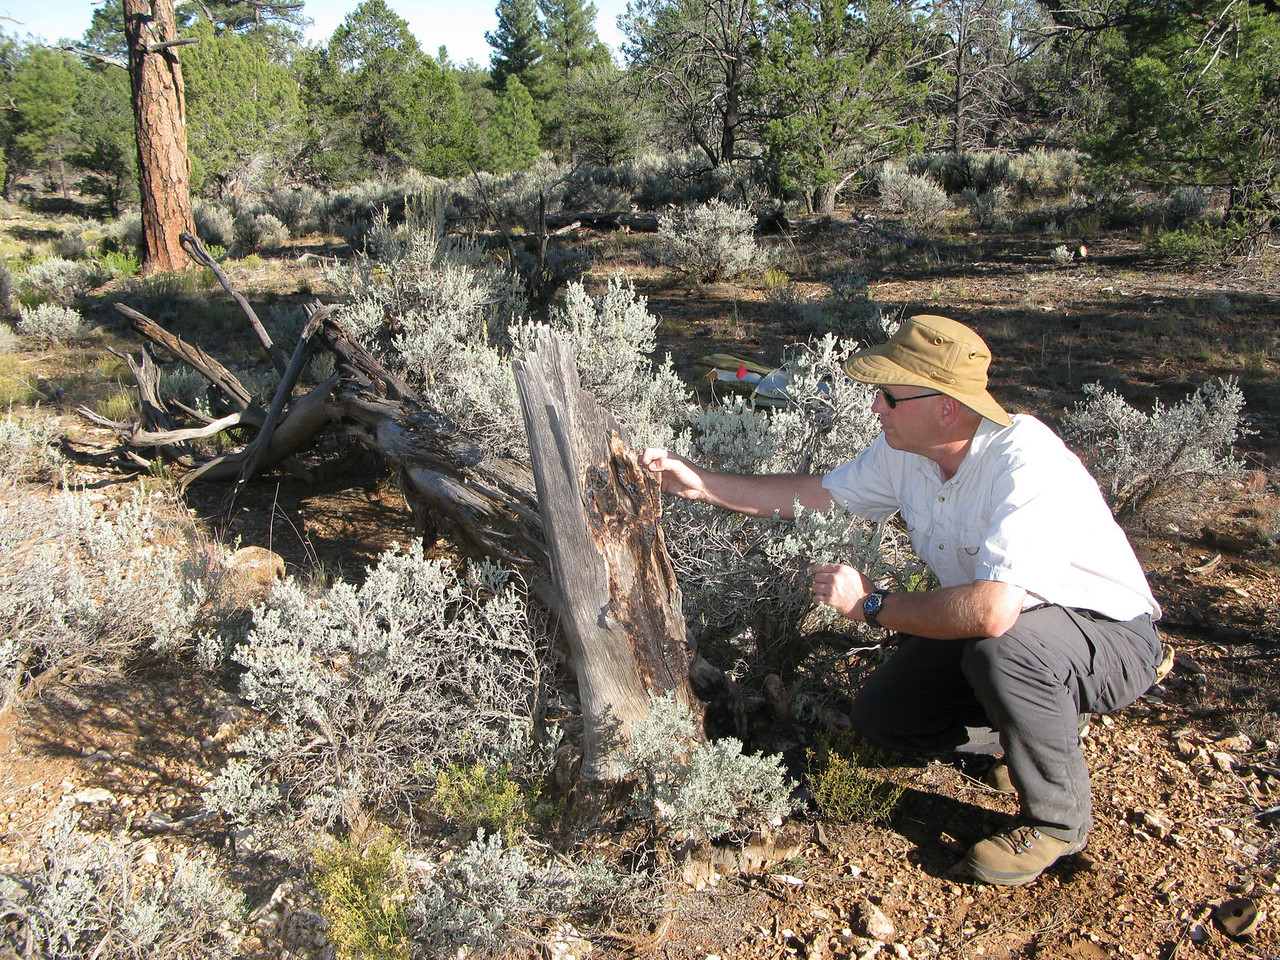 This remnant of a tree was broken by impact and partially burned from the post crash fire. I was glad to have locate and document the site prior to the prescribed burn.